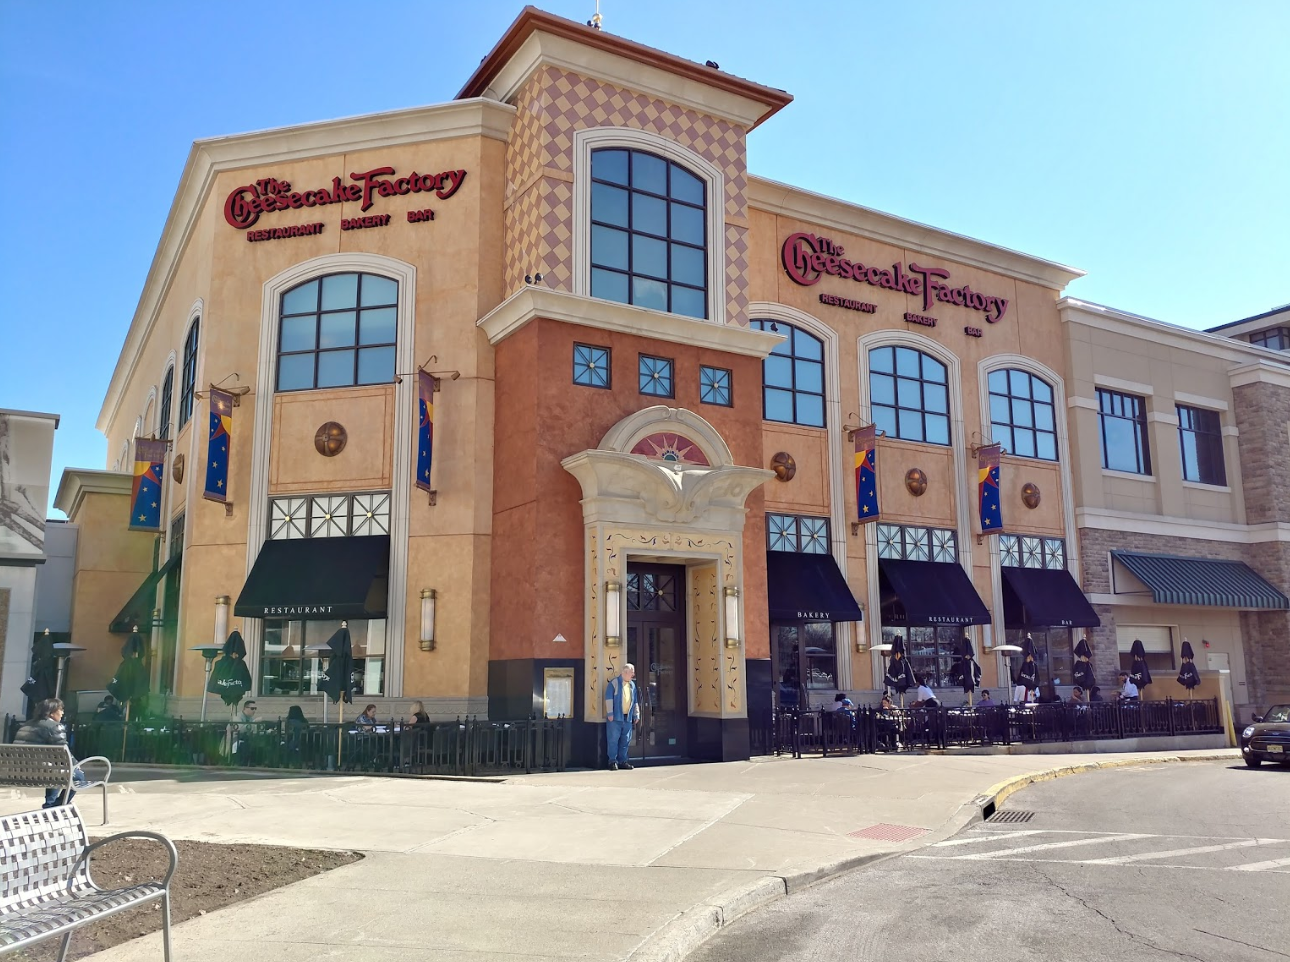 The Cheesecake Factory - Hackensack, NJ